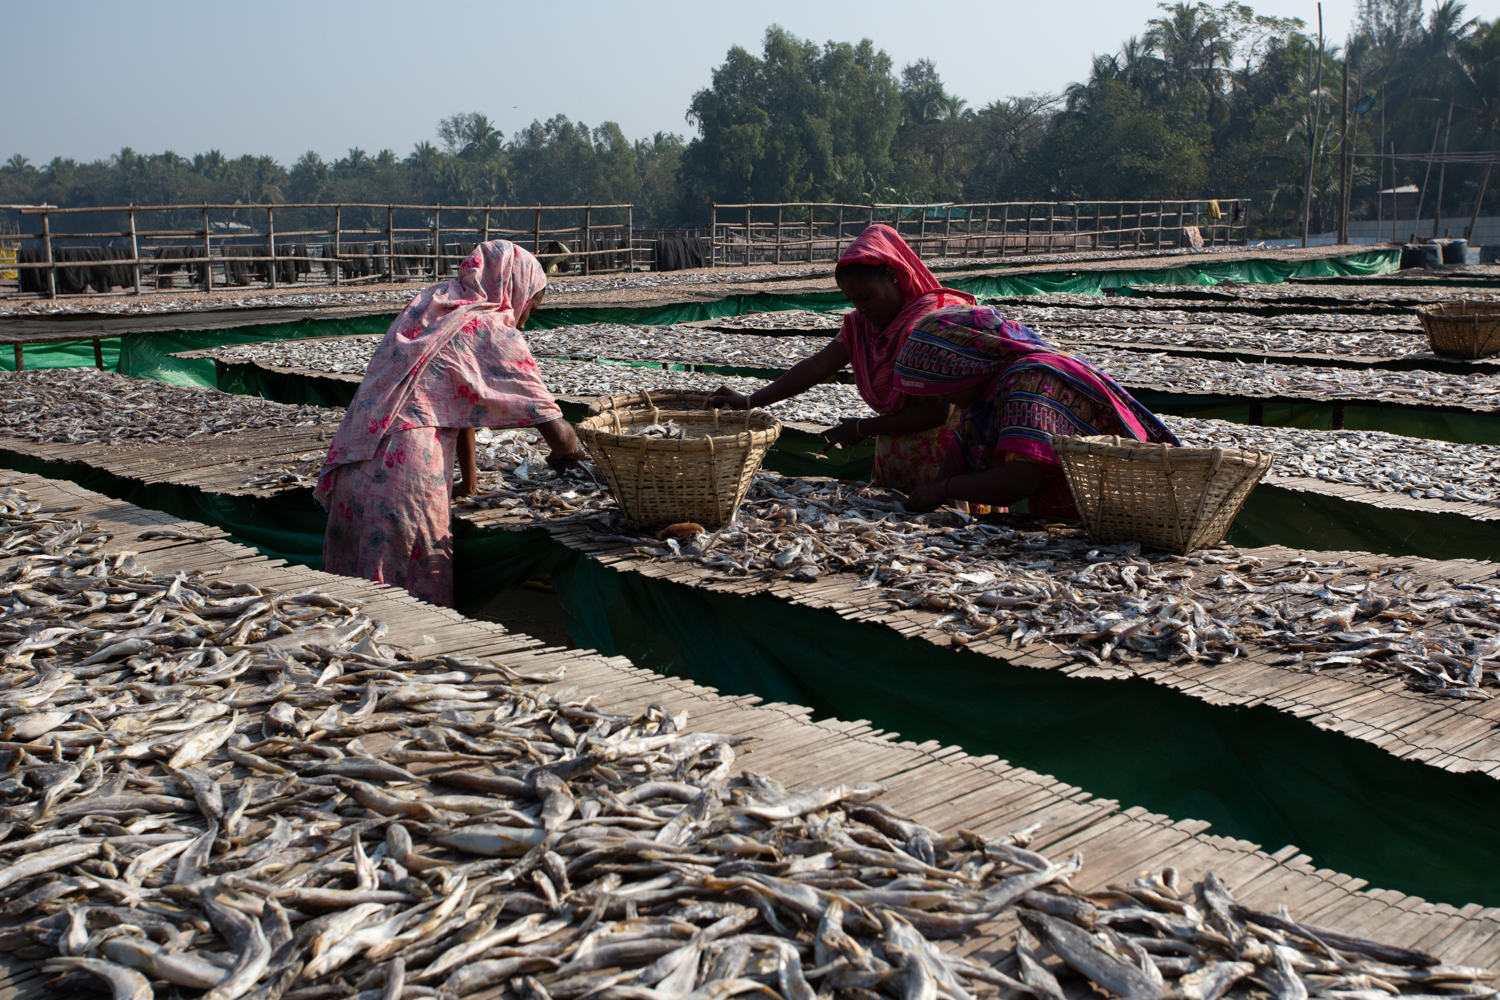 Women working together to collect and sort fish from racks at Dhaka - Bangladesh Dried Fish Village.